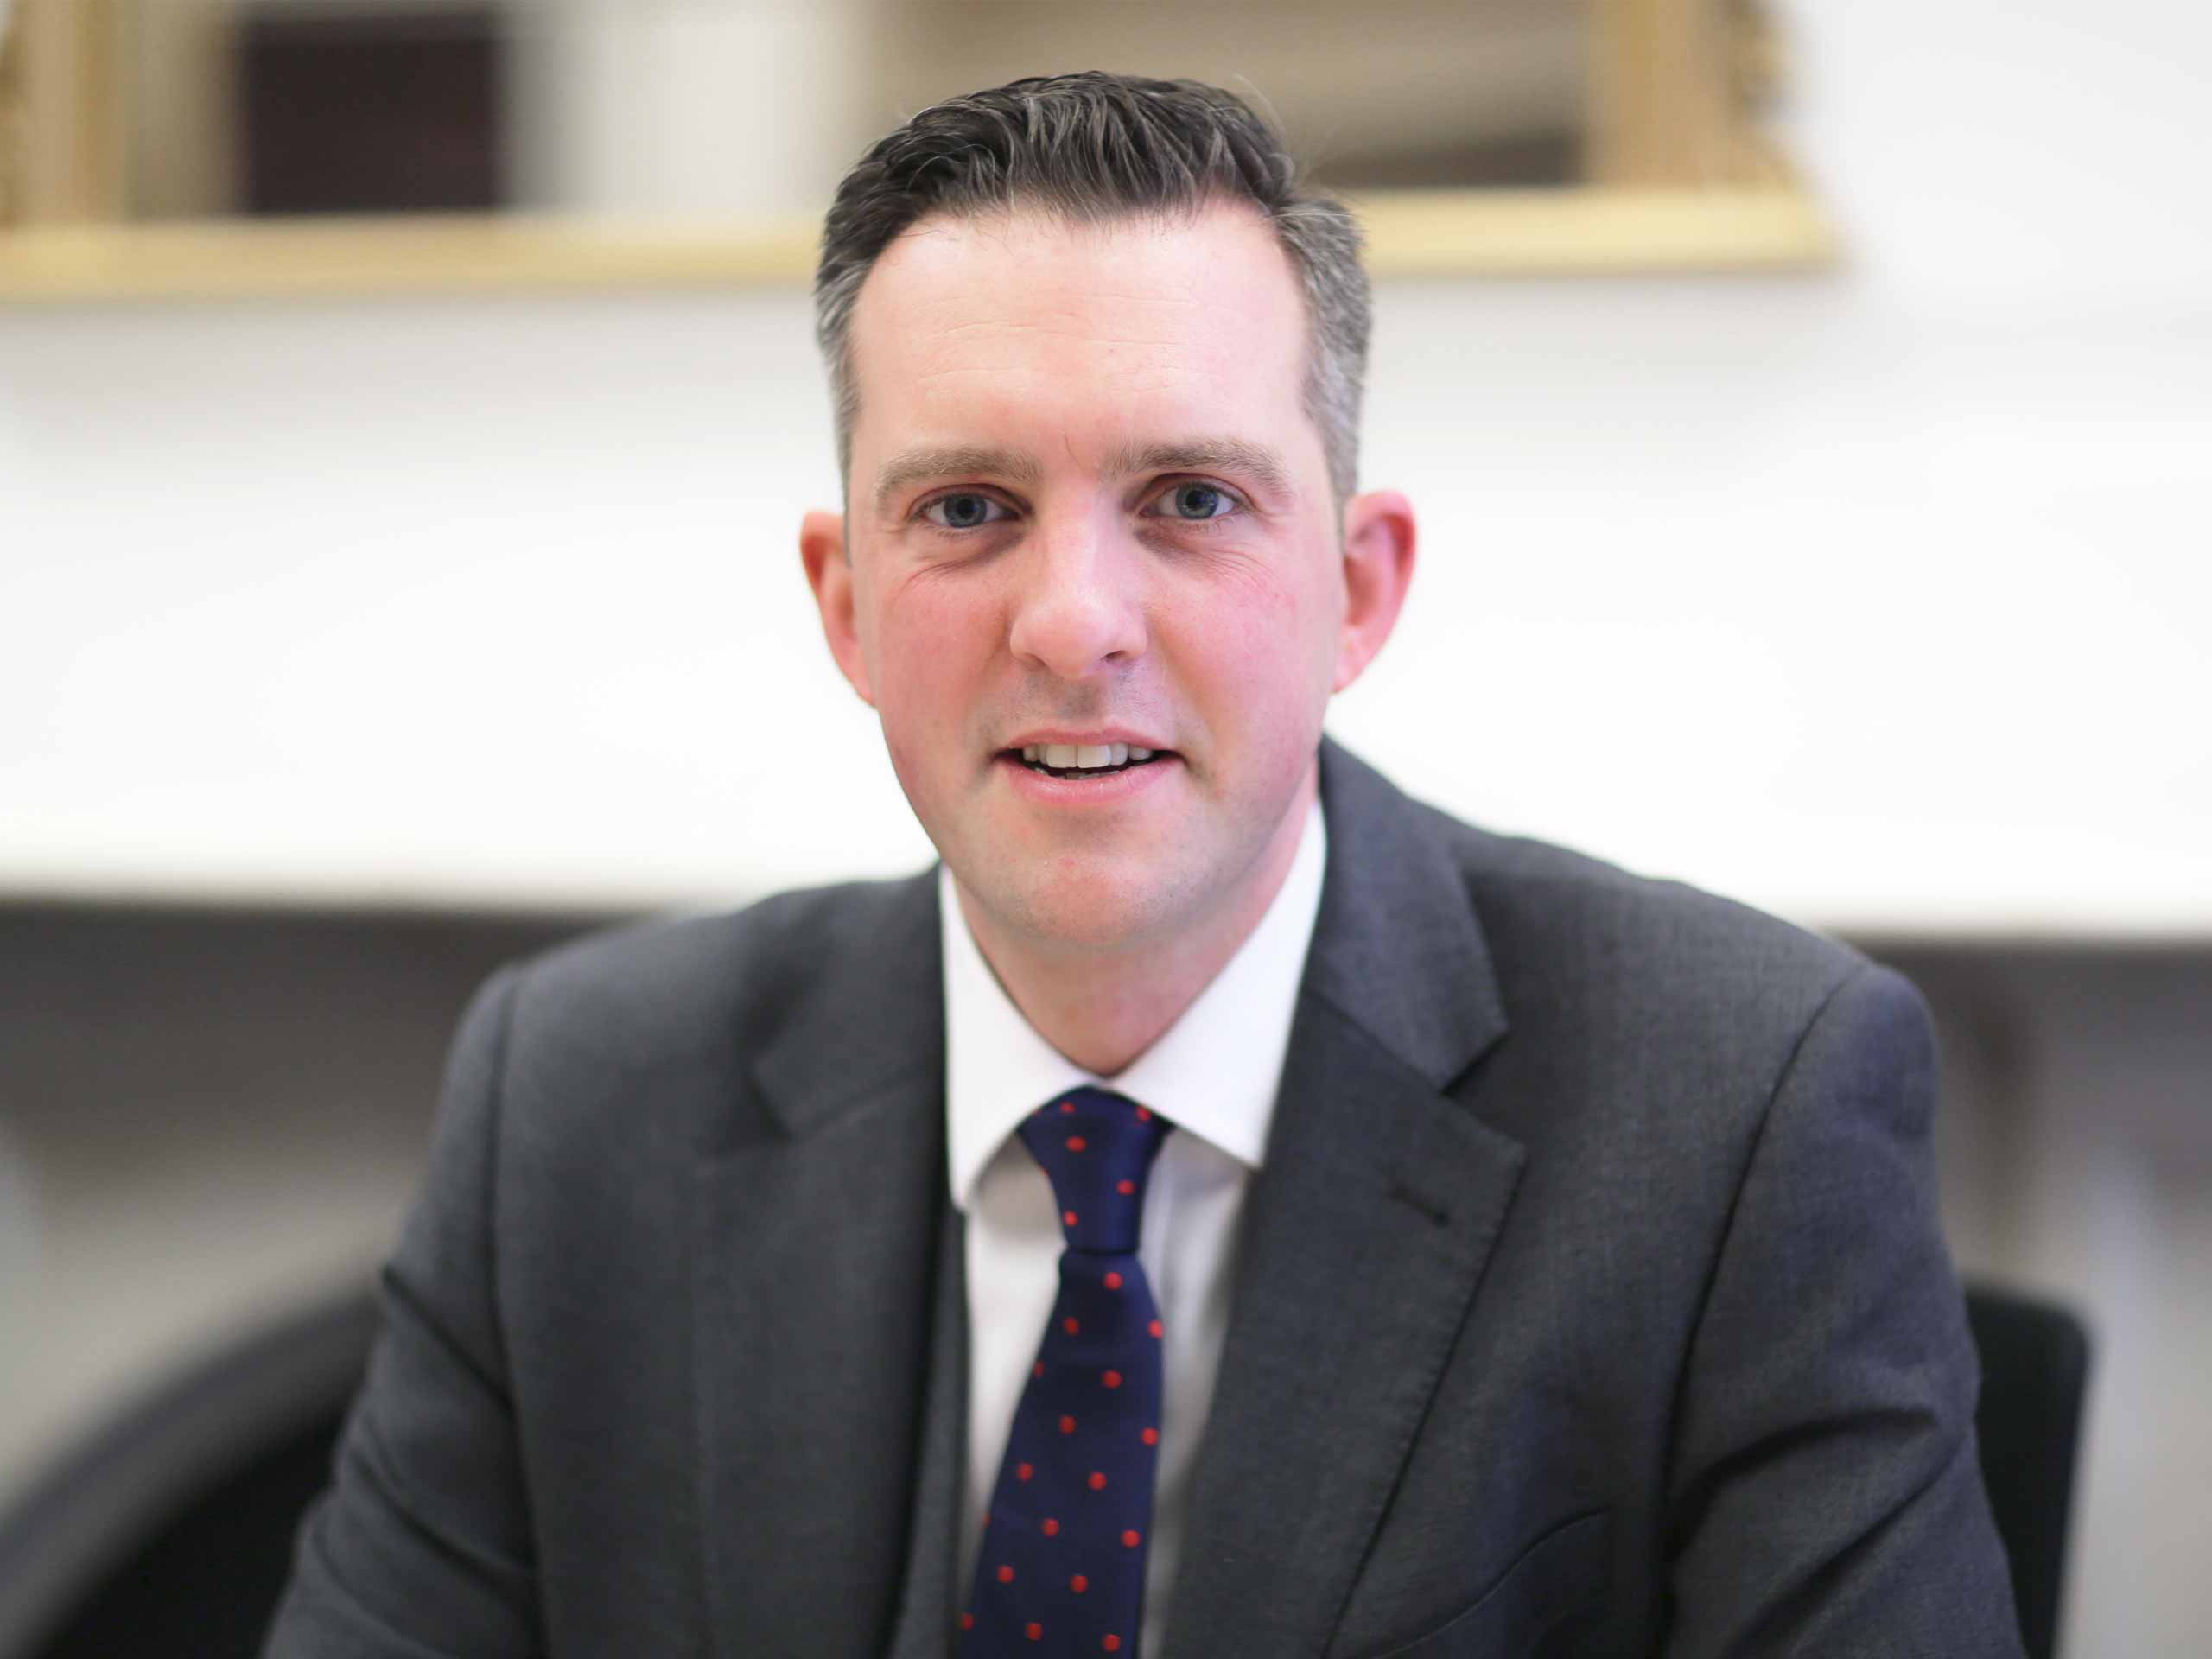 John Waller secures acquittal in GBH with intent trial